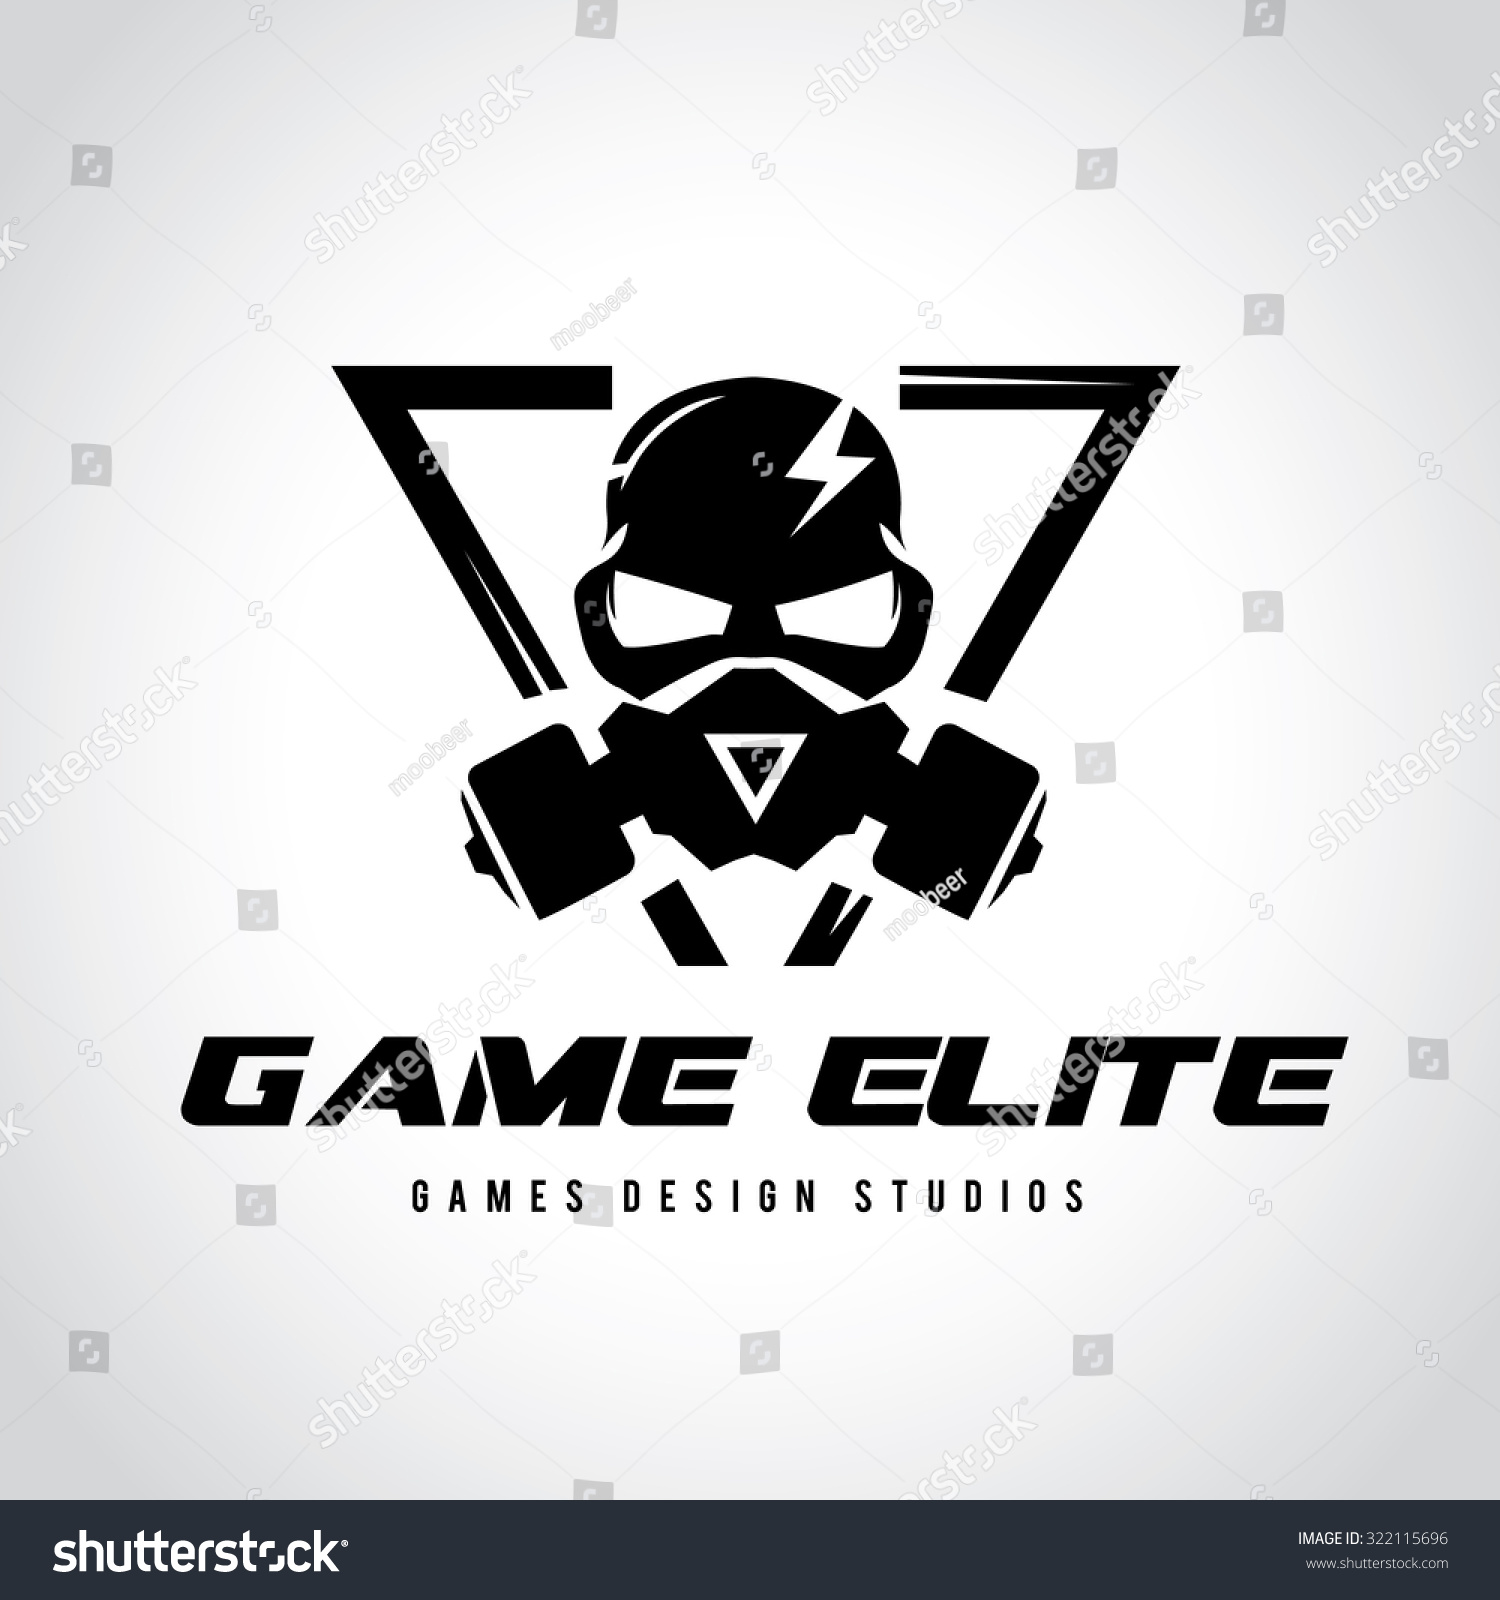 games logo vector logo template stock vector royalty free